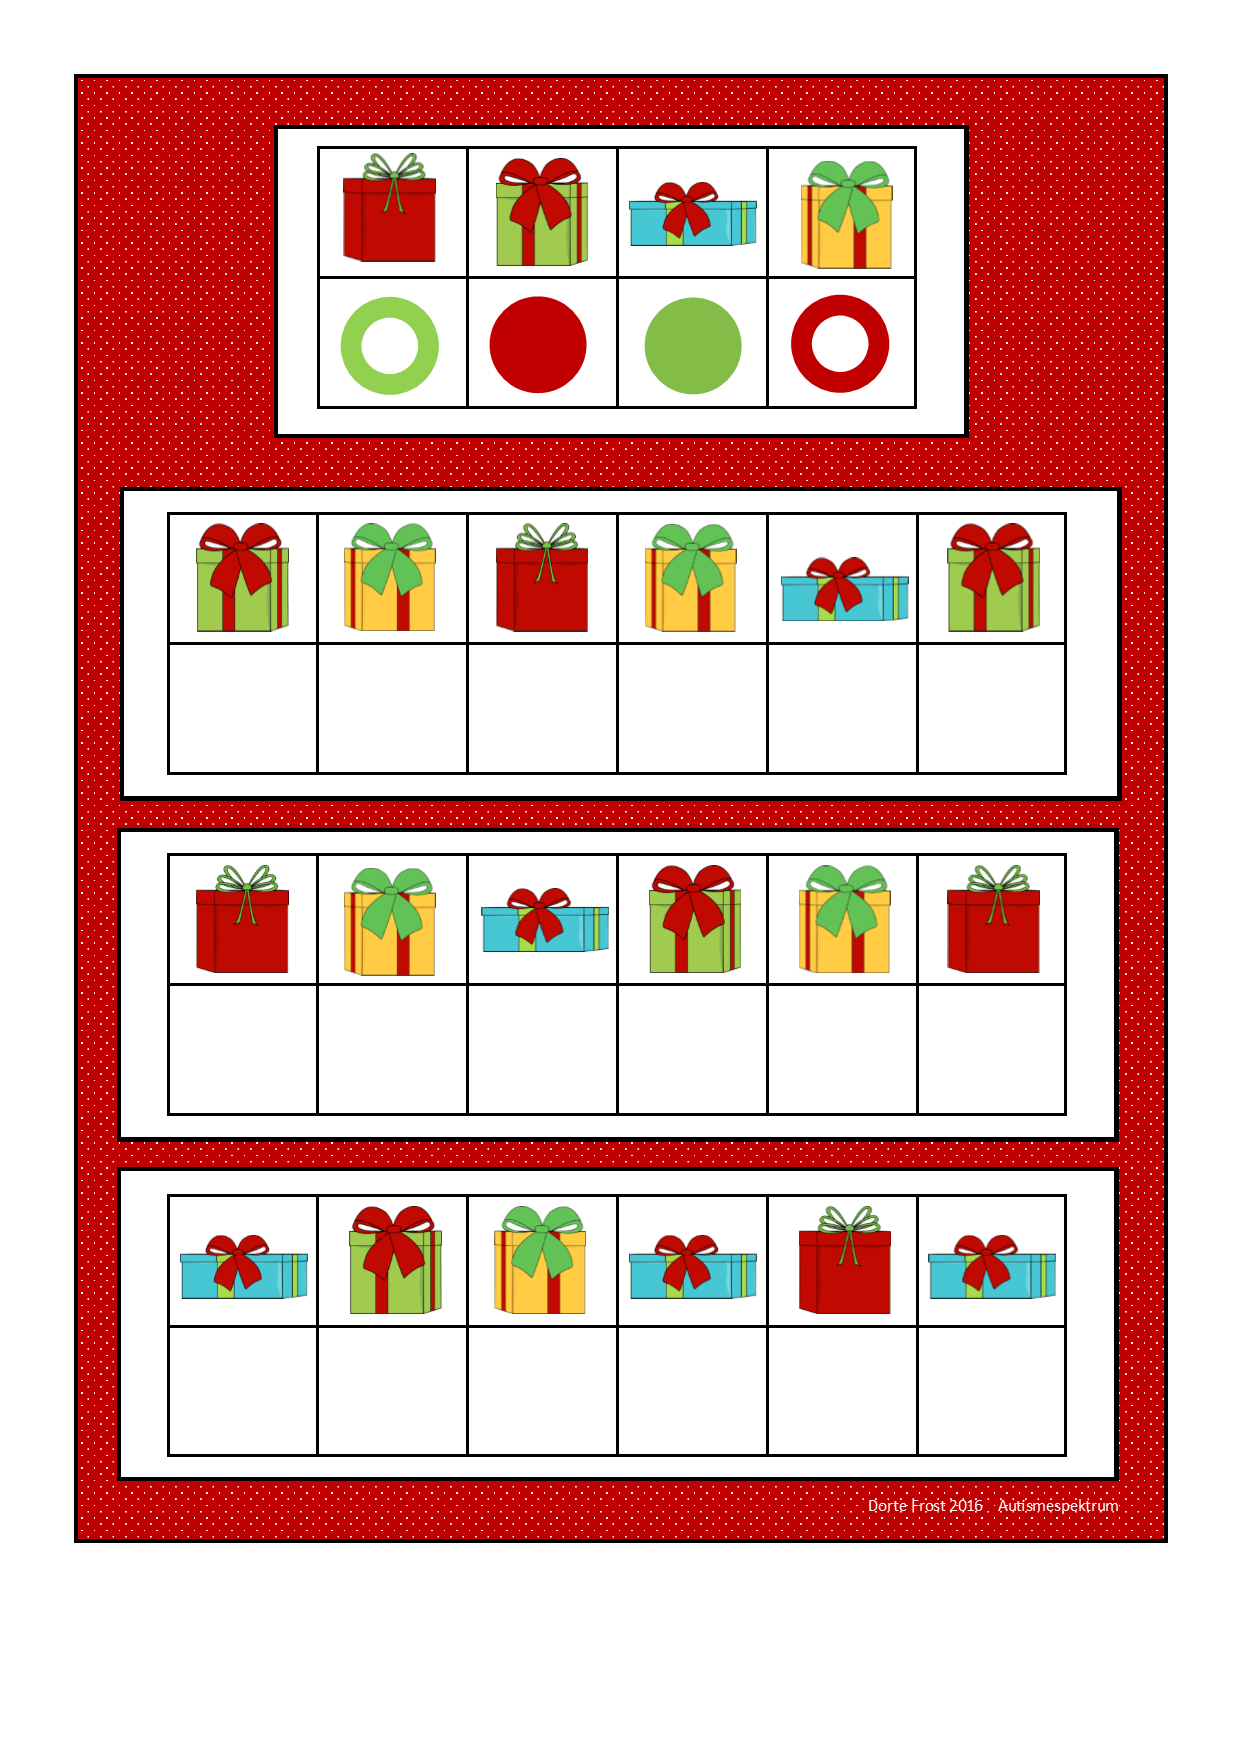 Board For The Present Visual Perception Game Find The